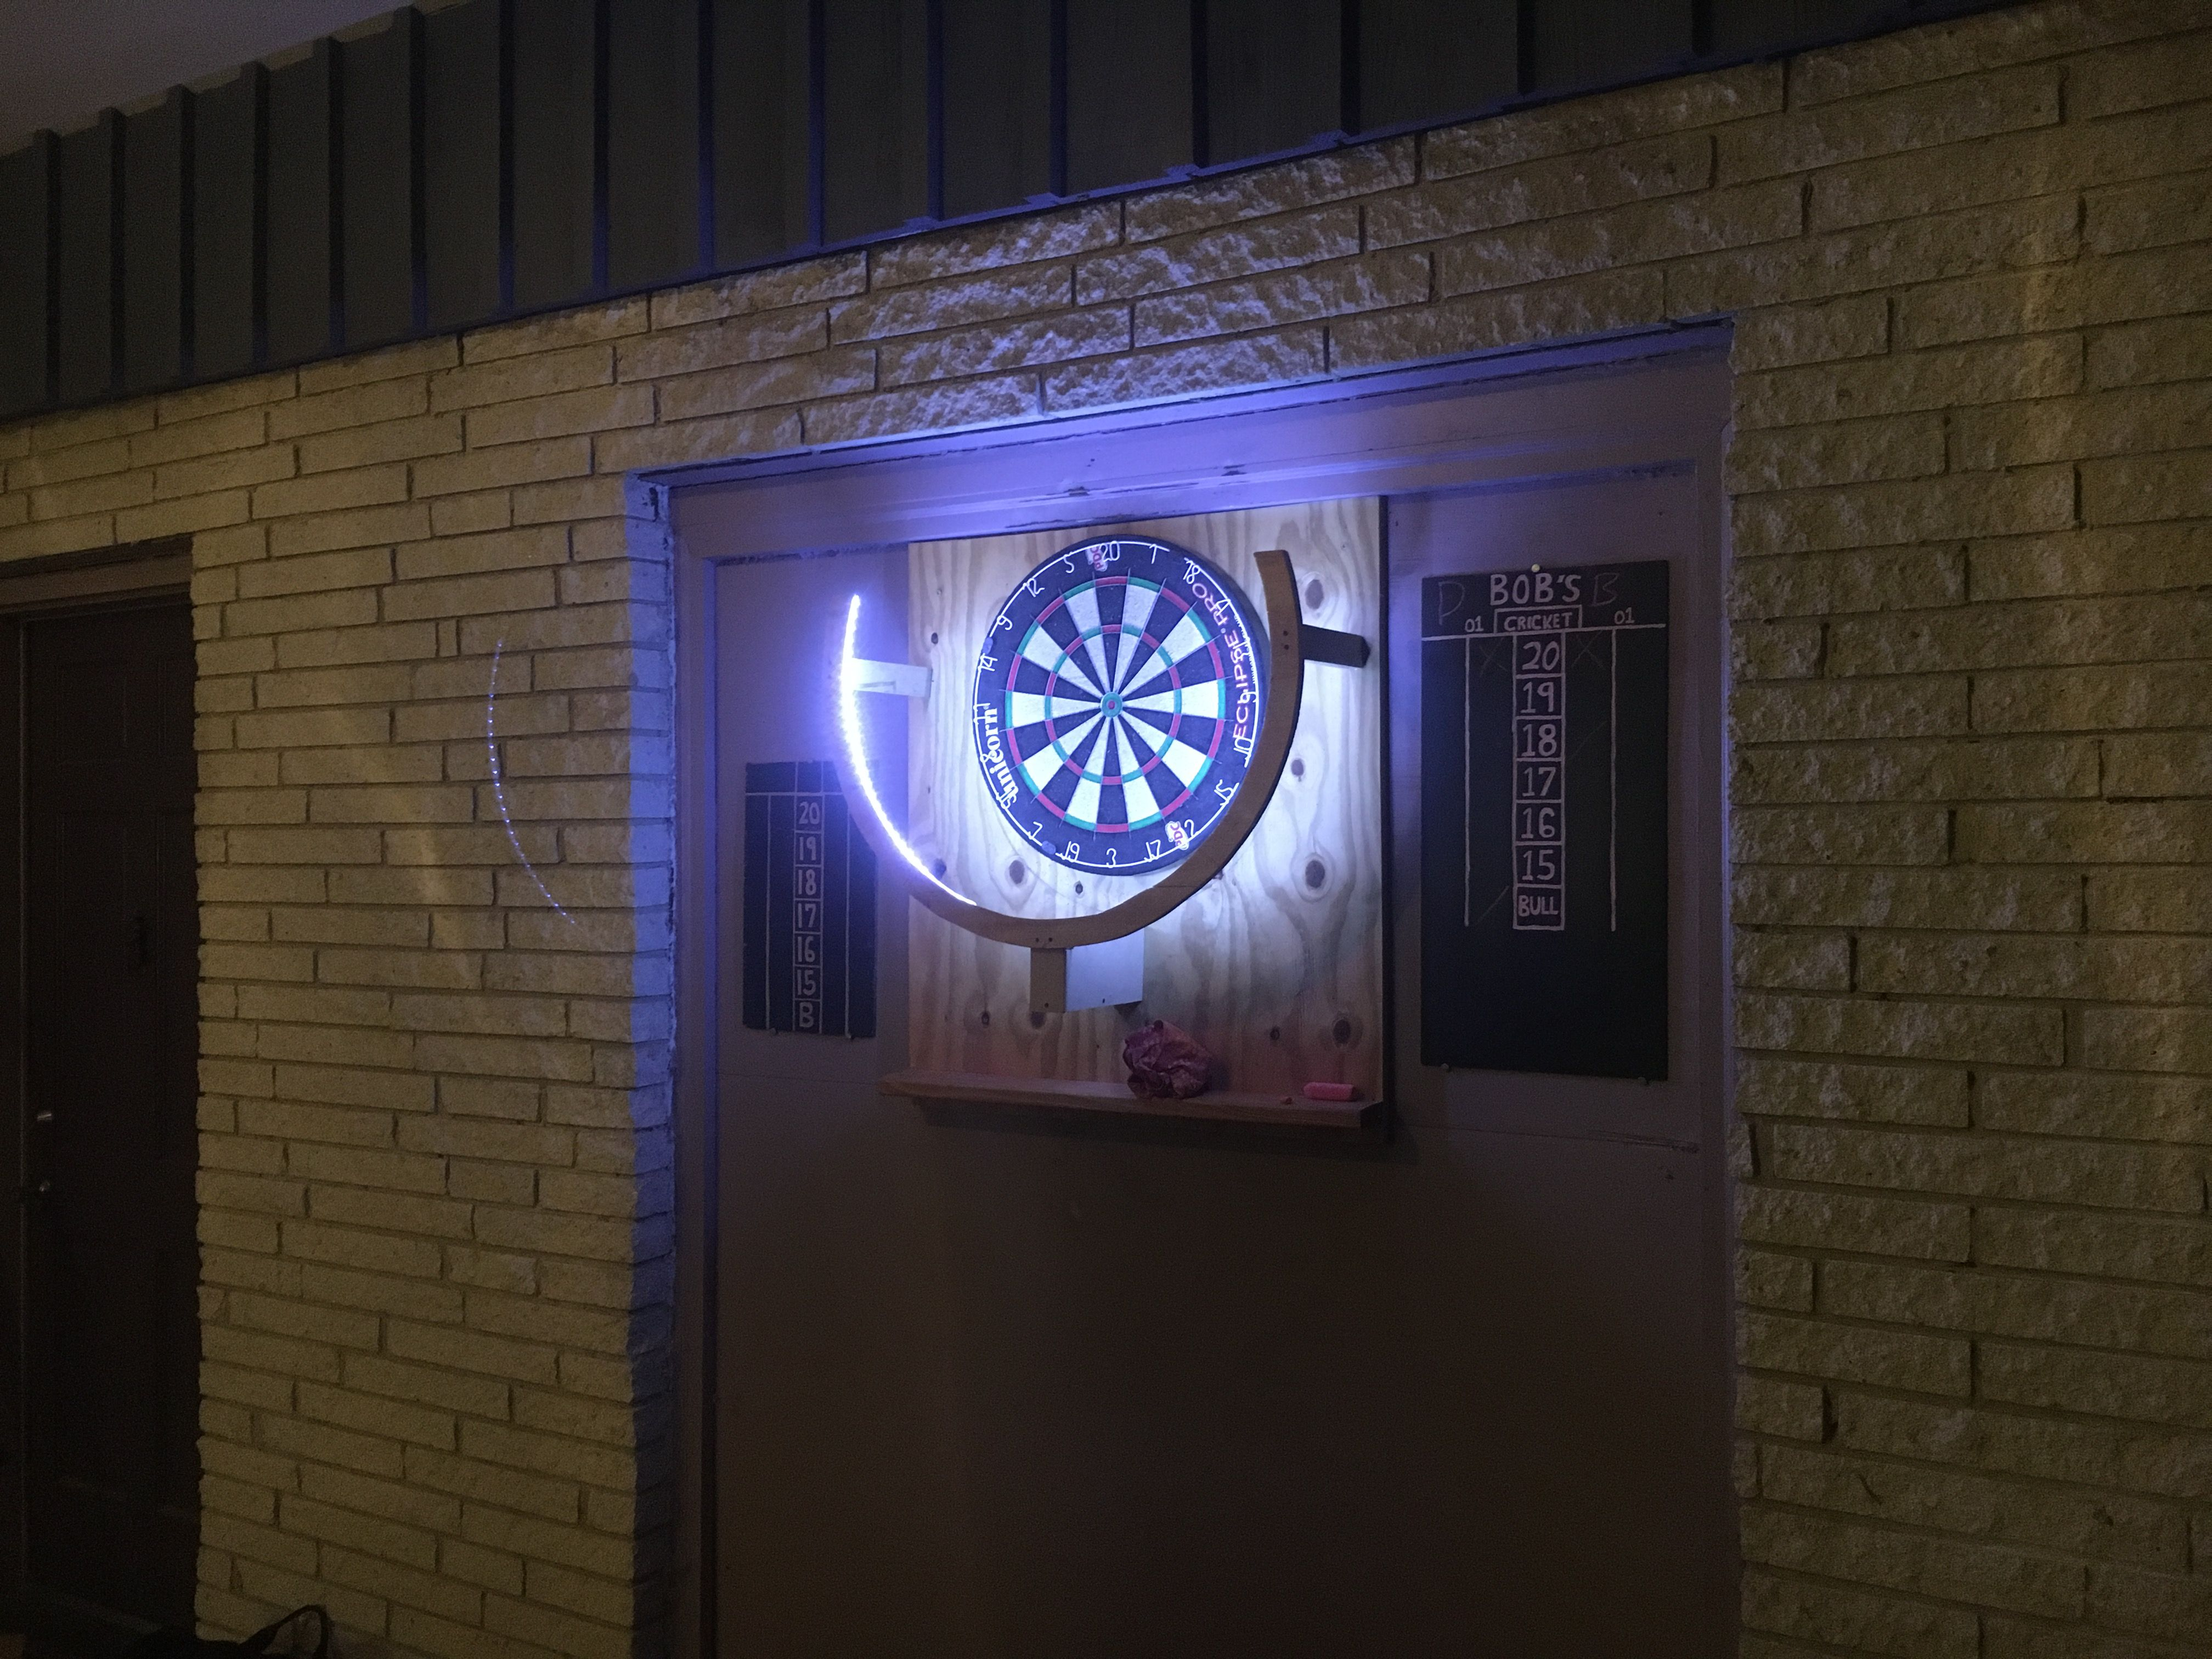 My Own Led Dartboard Lighting System Handmade Crafts Howto Diy Dartboard Diy Led Lighting Diy Dartboard Light